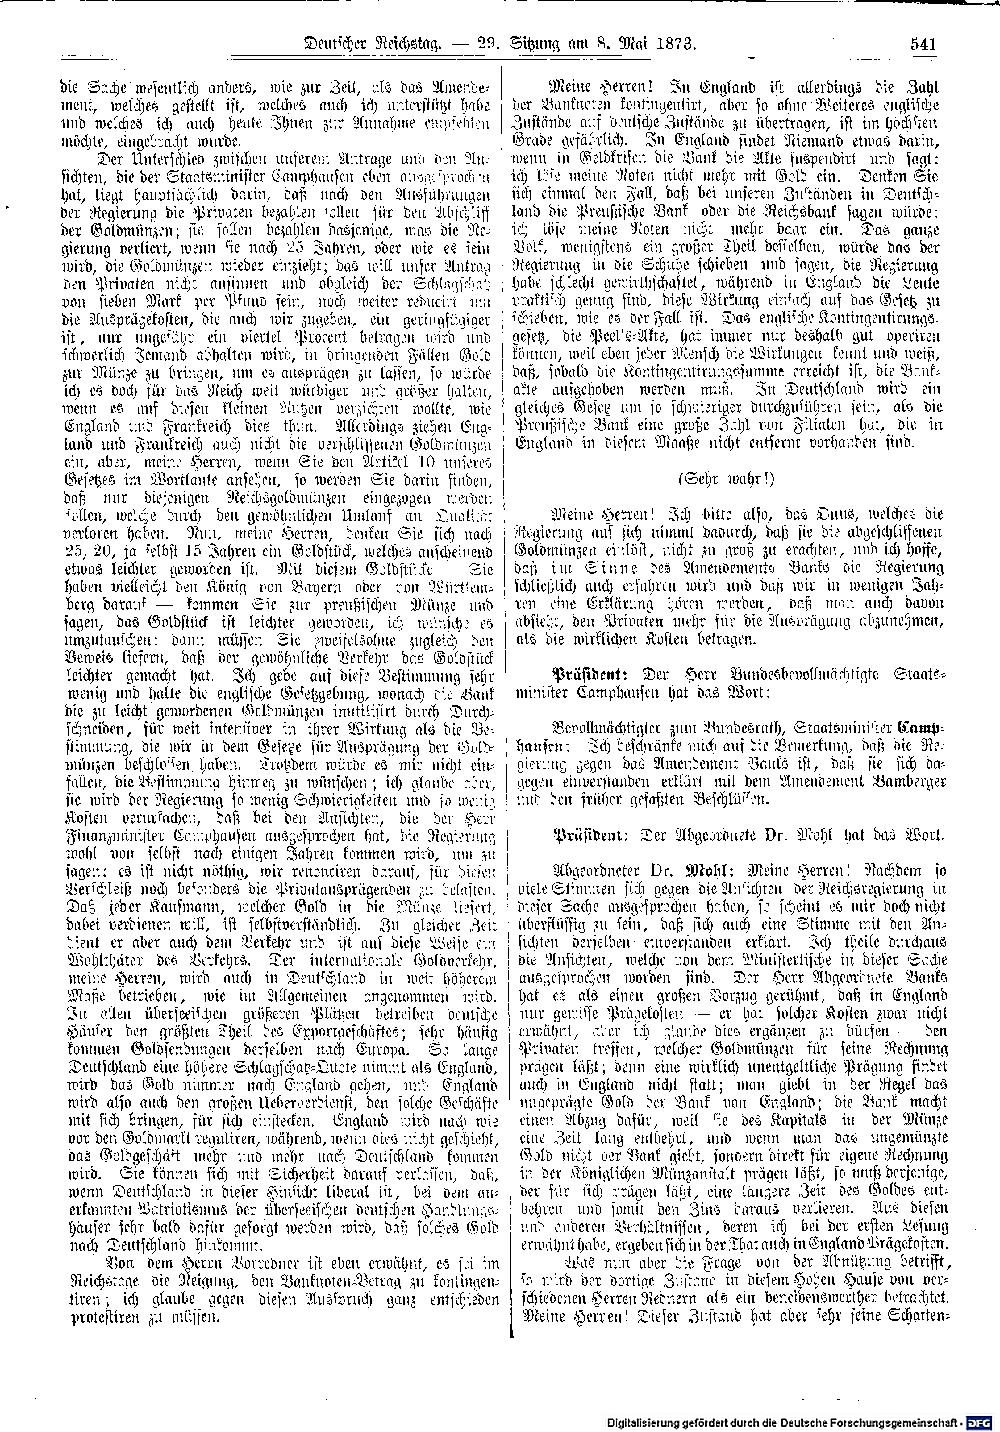 Scan of page 541